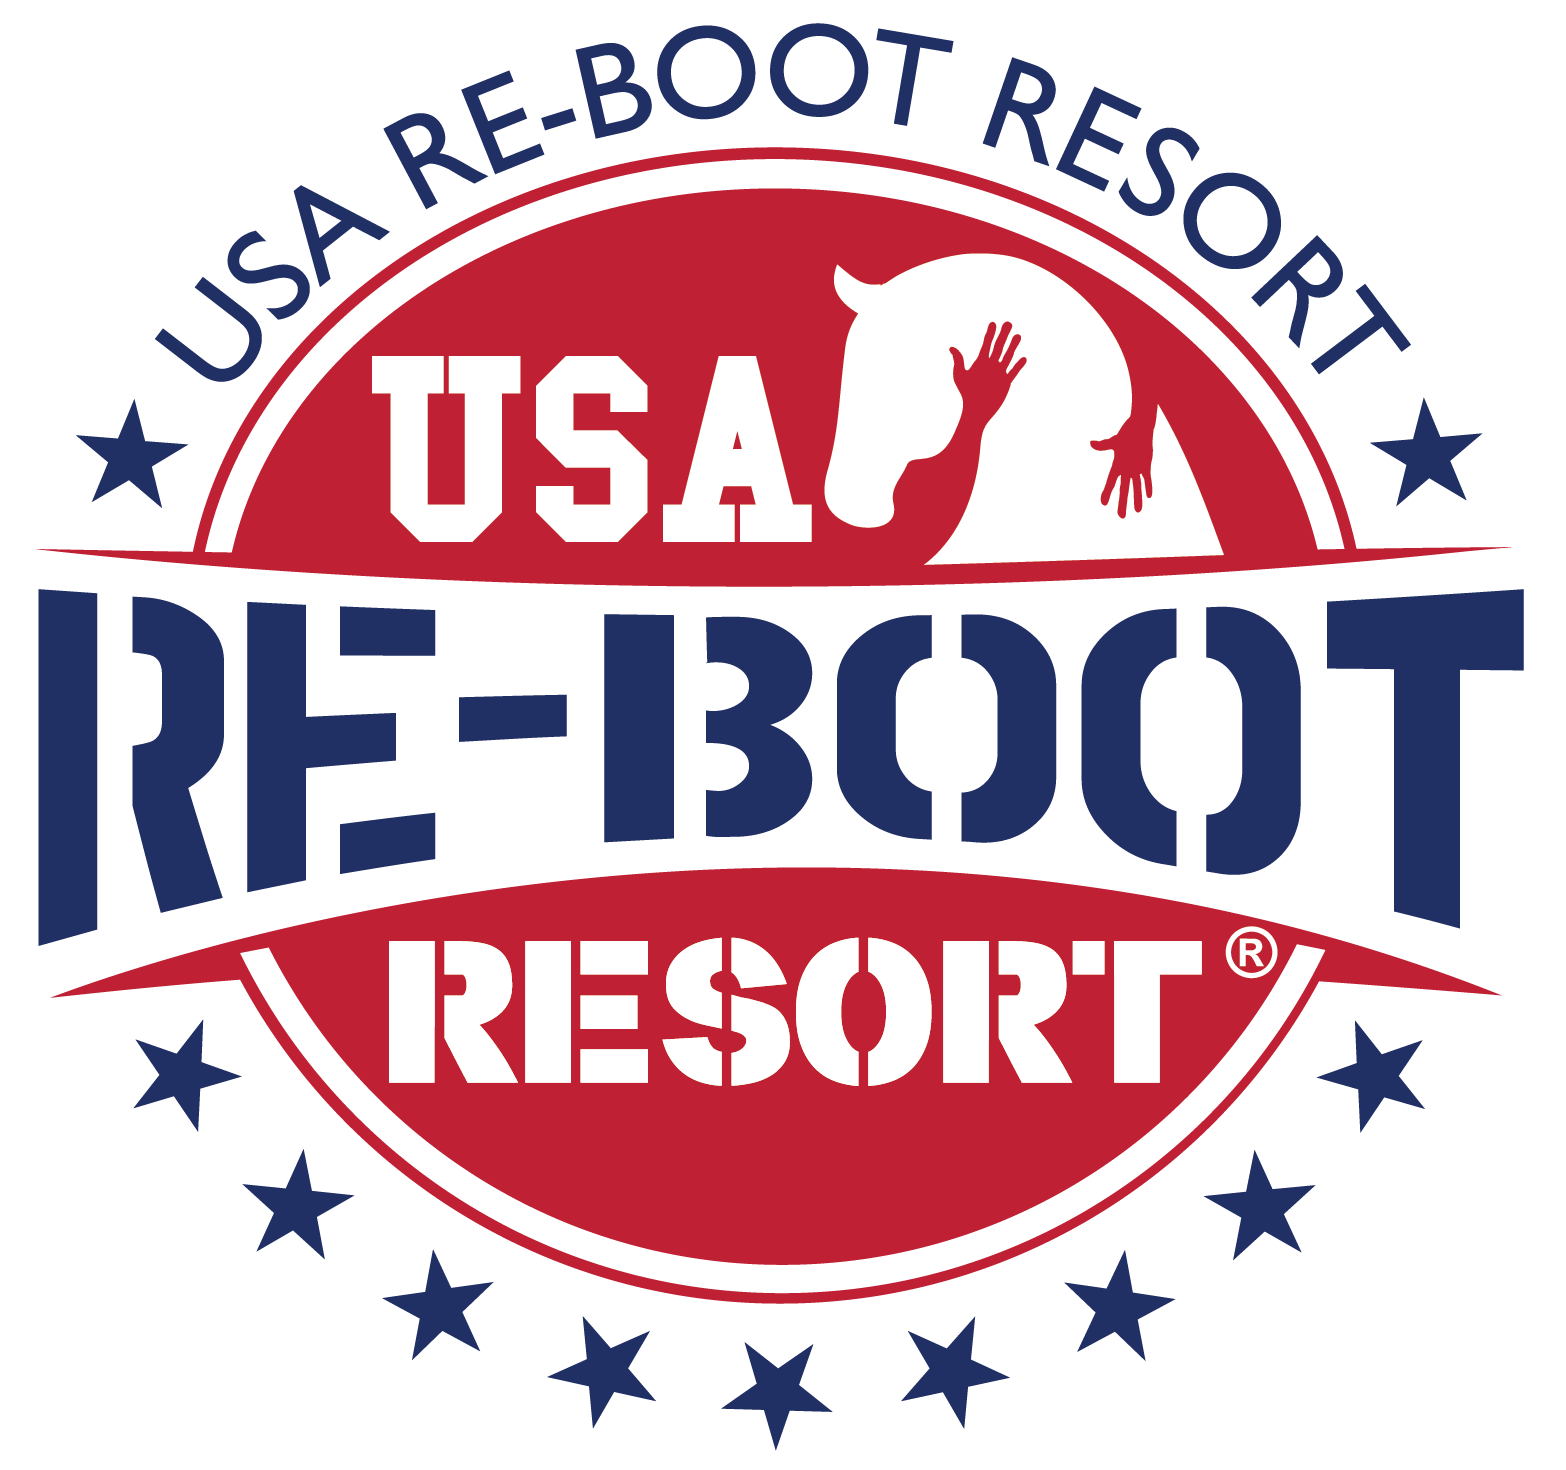 Depression clipart ptsd. Usa re boot resort